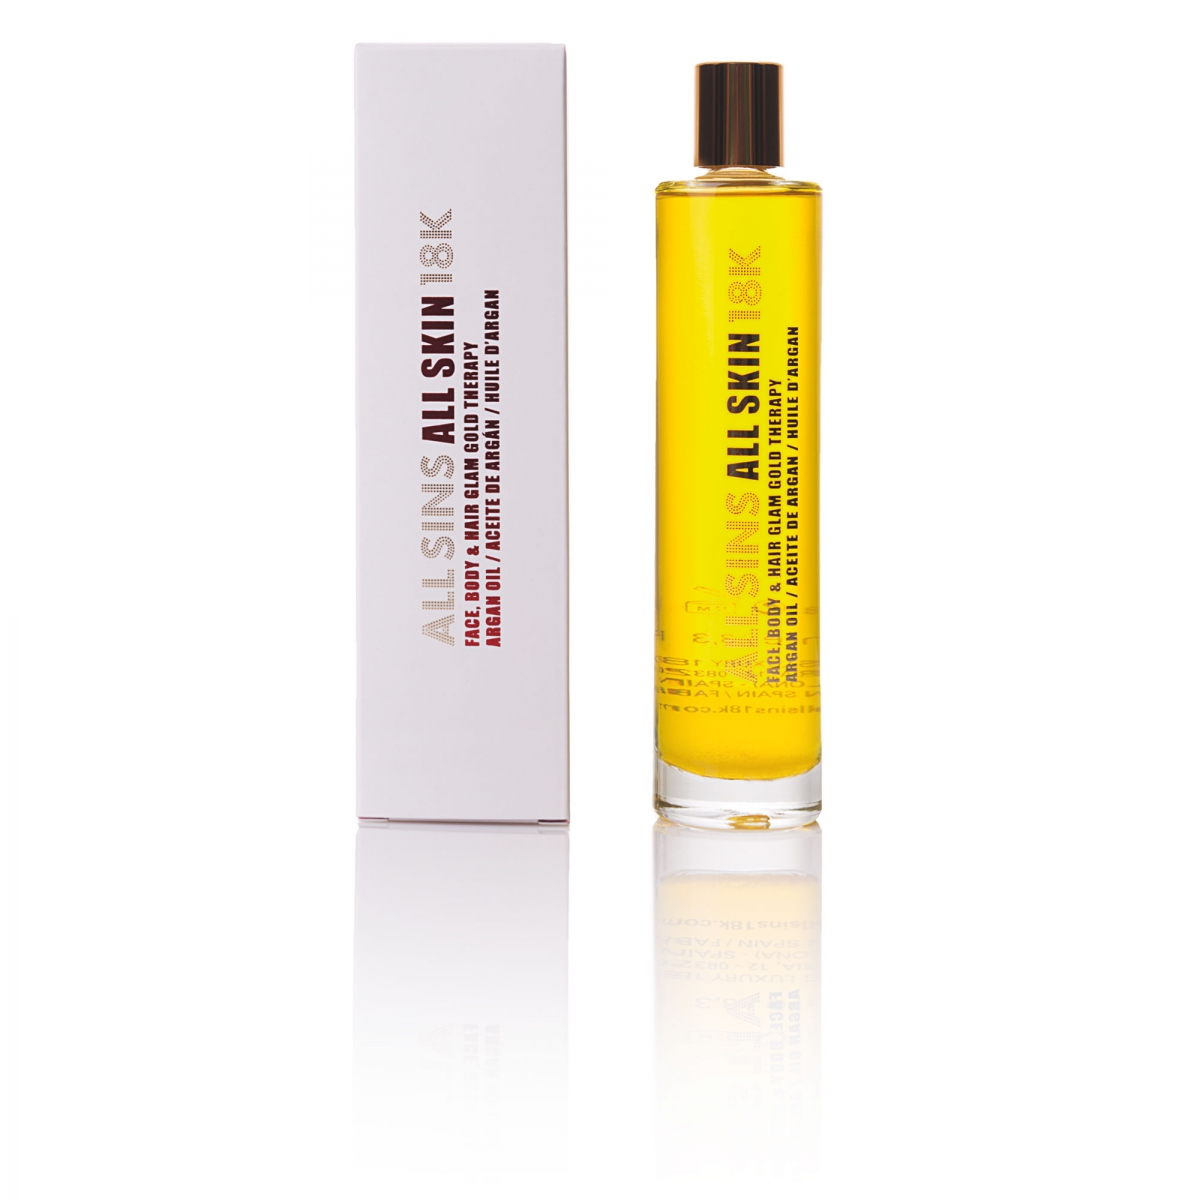 FACE, BODY & HAIR GLAM GOLD THERAPY